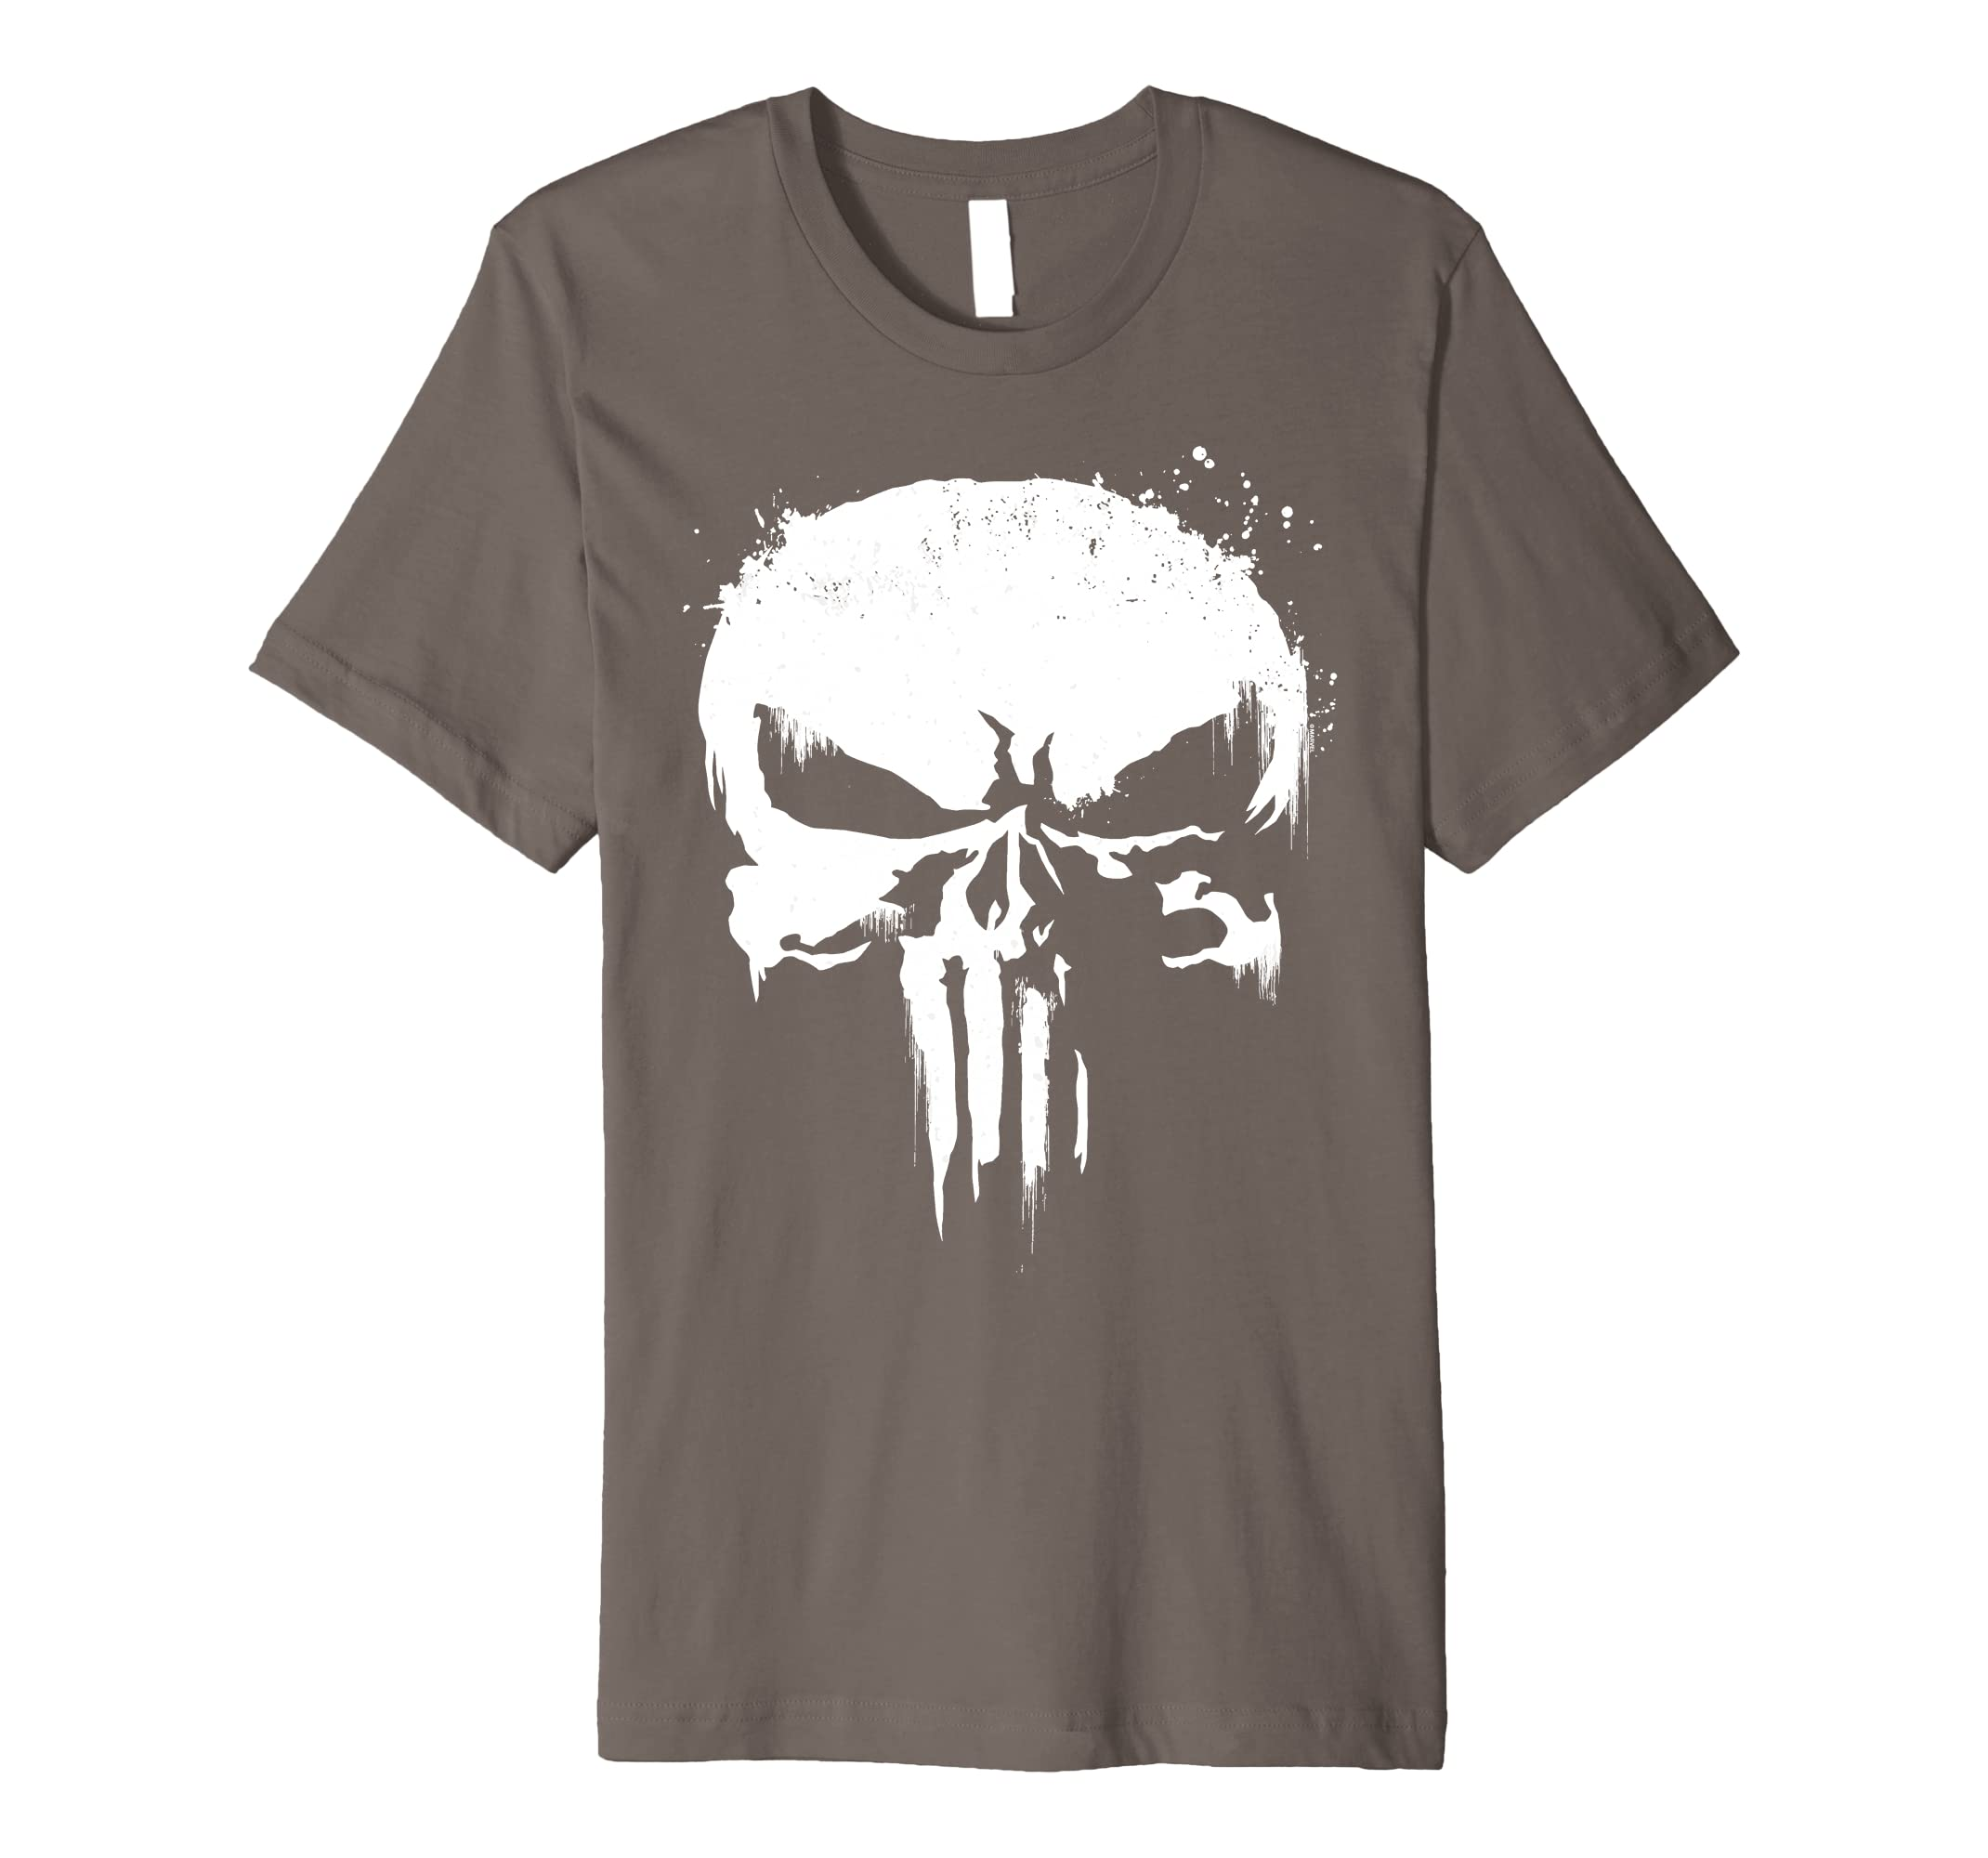 308655793d4d8 Amazon.com  Marvel Punisher White Paint Splatter Skull Premium T-Shirt   Clothing